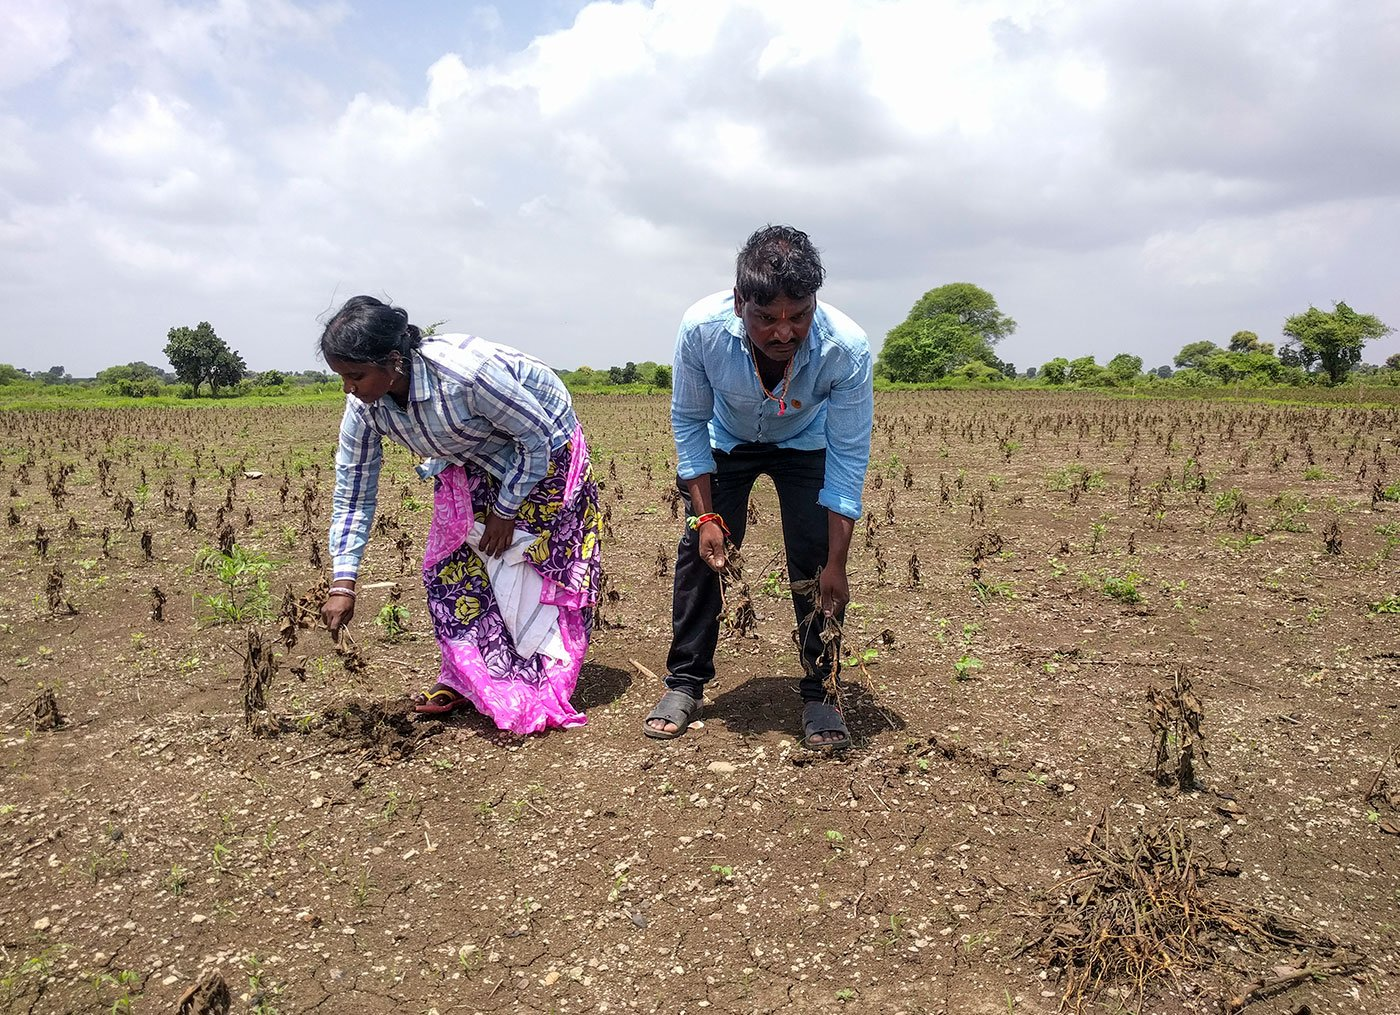 Kuntawar Sangeetha (left) and Kuntawar Gajanan (right) clearing the dead plants on their farm. They are preparing their land for cultivating chickpea in Rabi season